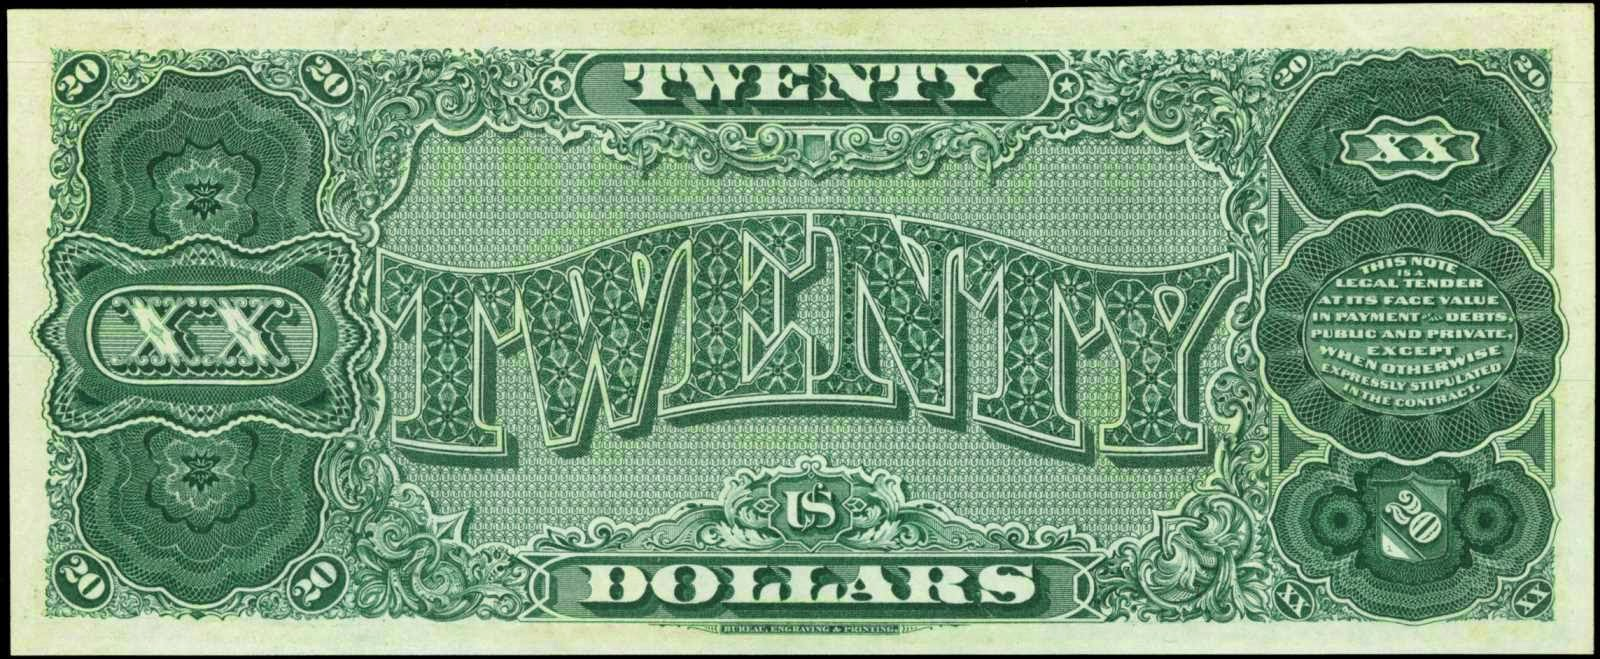 20 US Dollars Treasury or Coin Note, Series of 1890